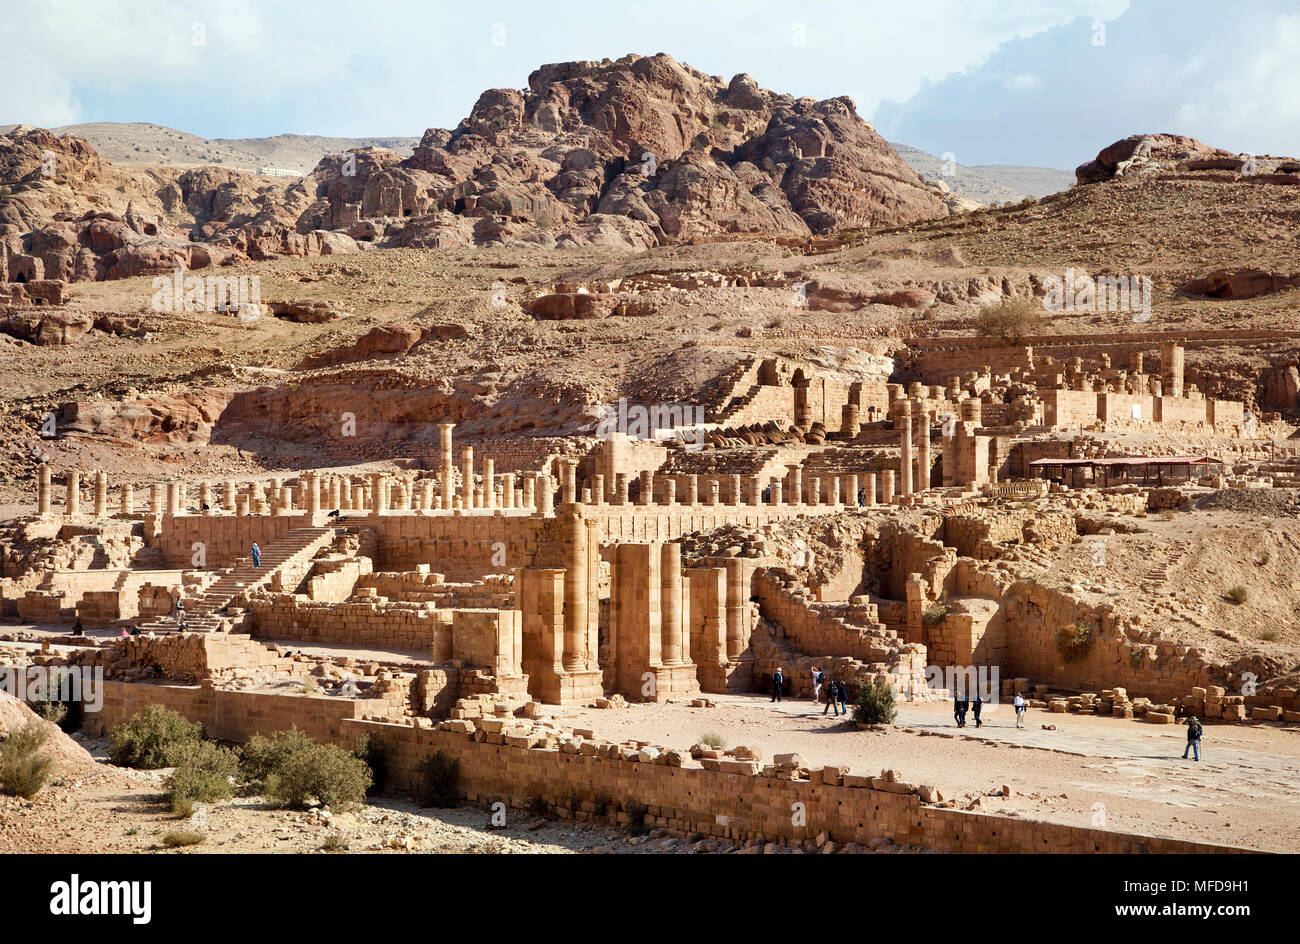 Panoramic view of the Colonnade street, the ruins of the Great Temple and the Gate of Temenos in the ancient city of Petra, Jordan - Stock Image